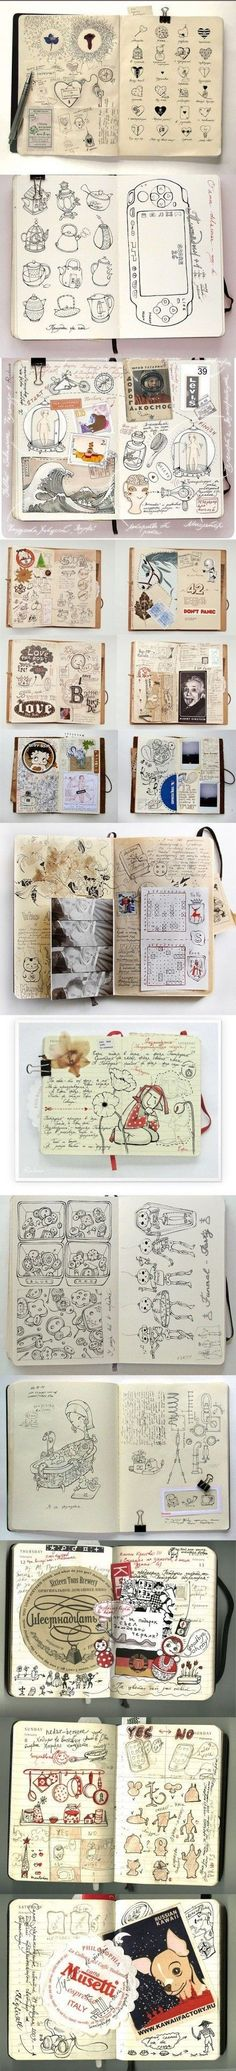 Absolutely Fantastic style in this sketchbook. Not sure who the artist is. There's a link below...however it's a Chinese site, so I'm confused about whether or not this is an artist showcasing their work, or if this is a Chinese Pinterest style board/blog.: